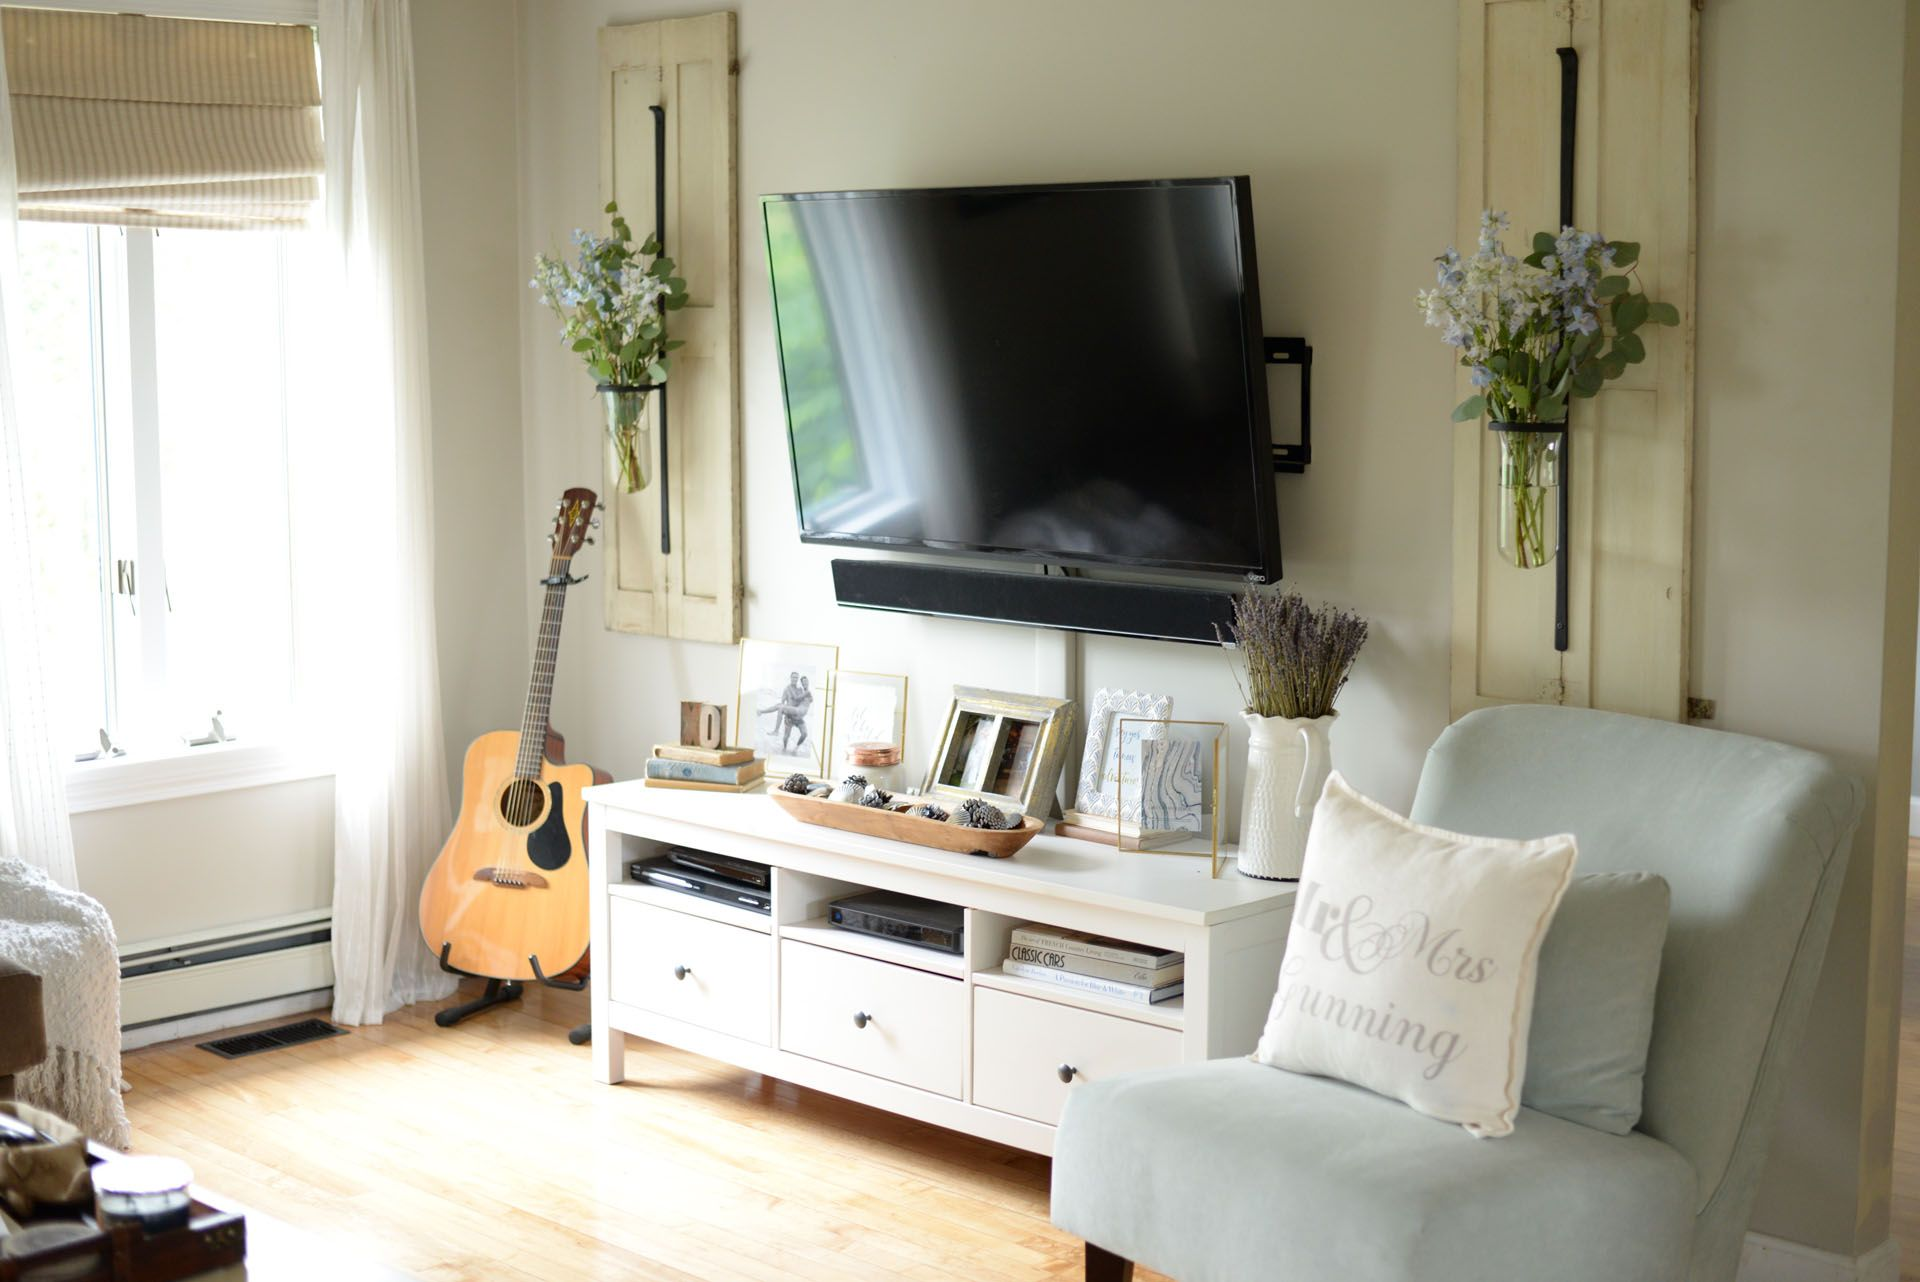 How to Decorate Around Your TV Like a Pro | Tv wall decor, Tv walls ... for Decorating Ideas Around Tv On Wall  104xkb